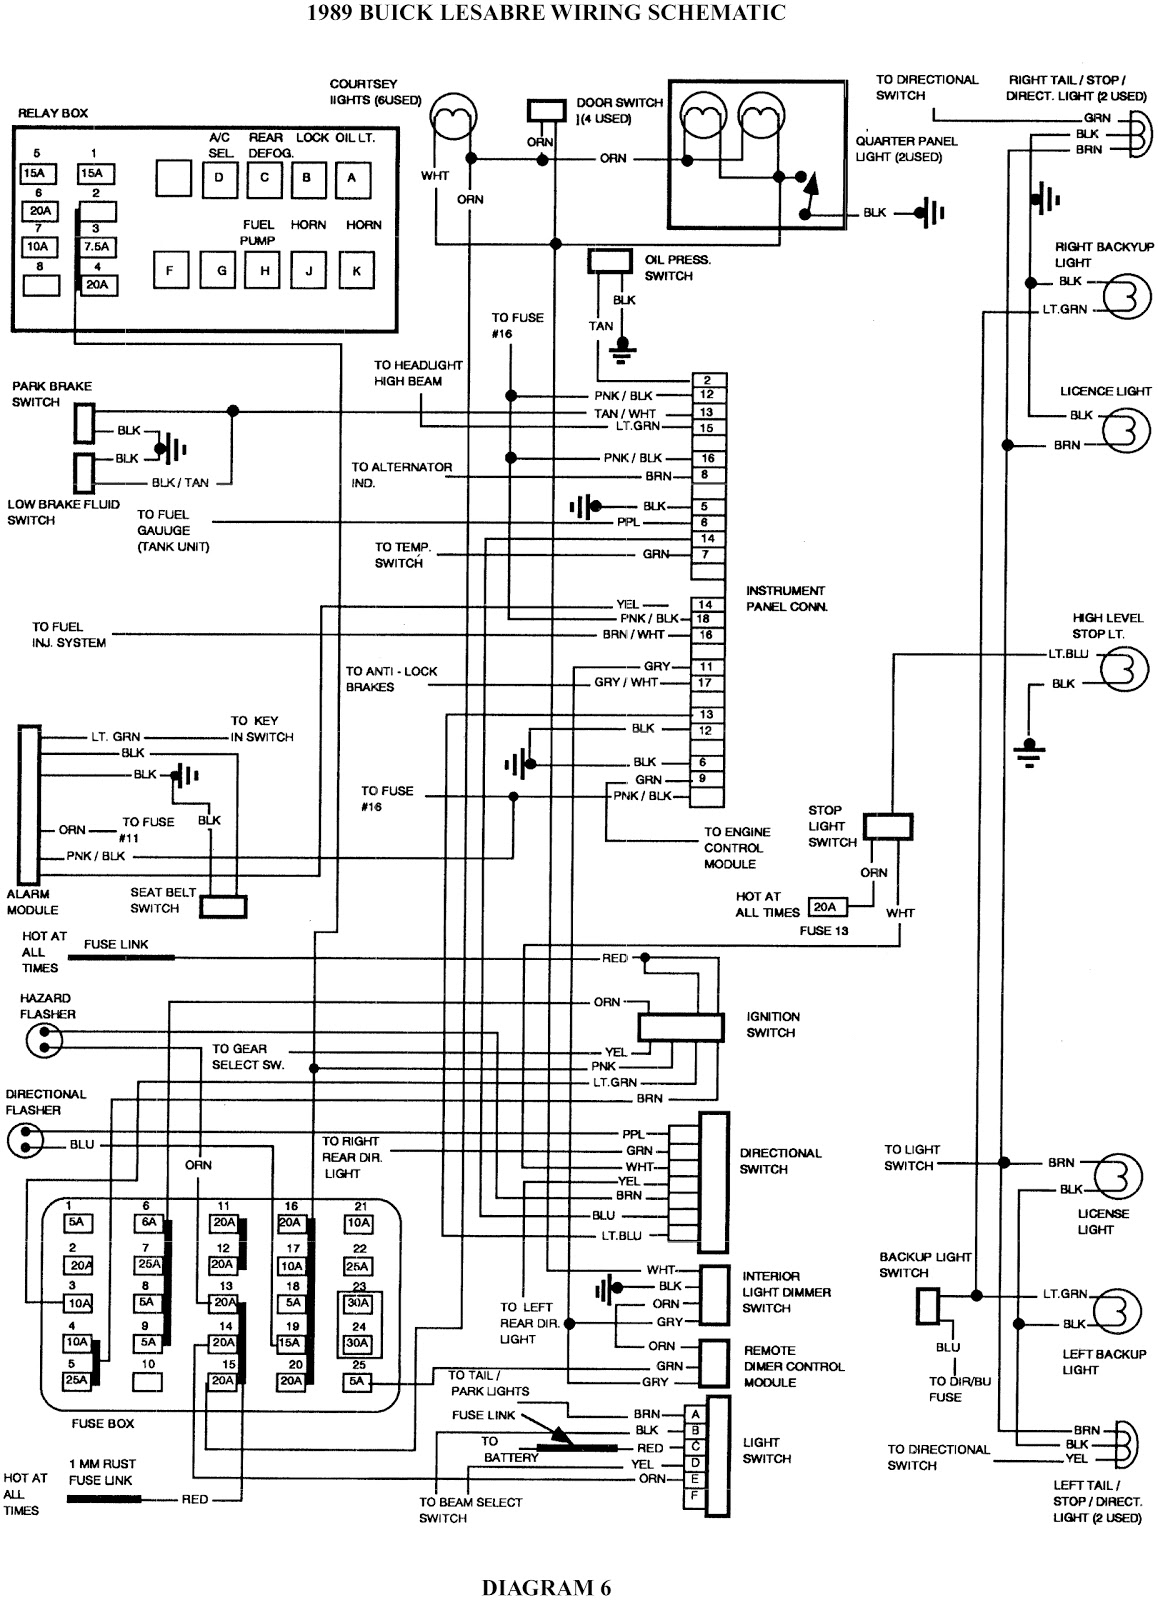 2000 Buick Lesabre Wiring Diagrams on 1990 buick century radio wiring diagram